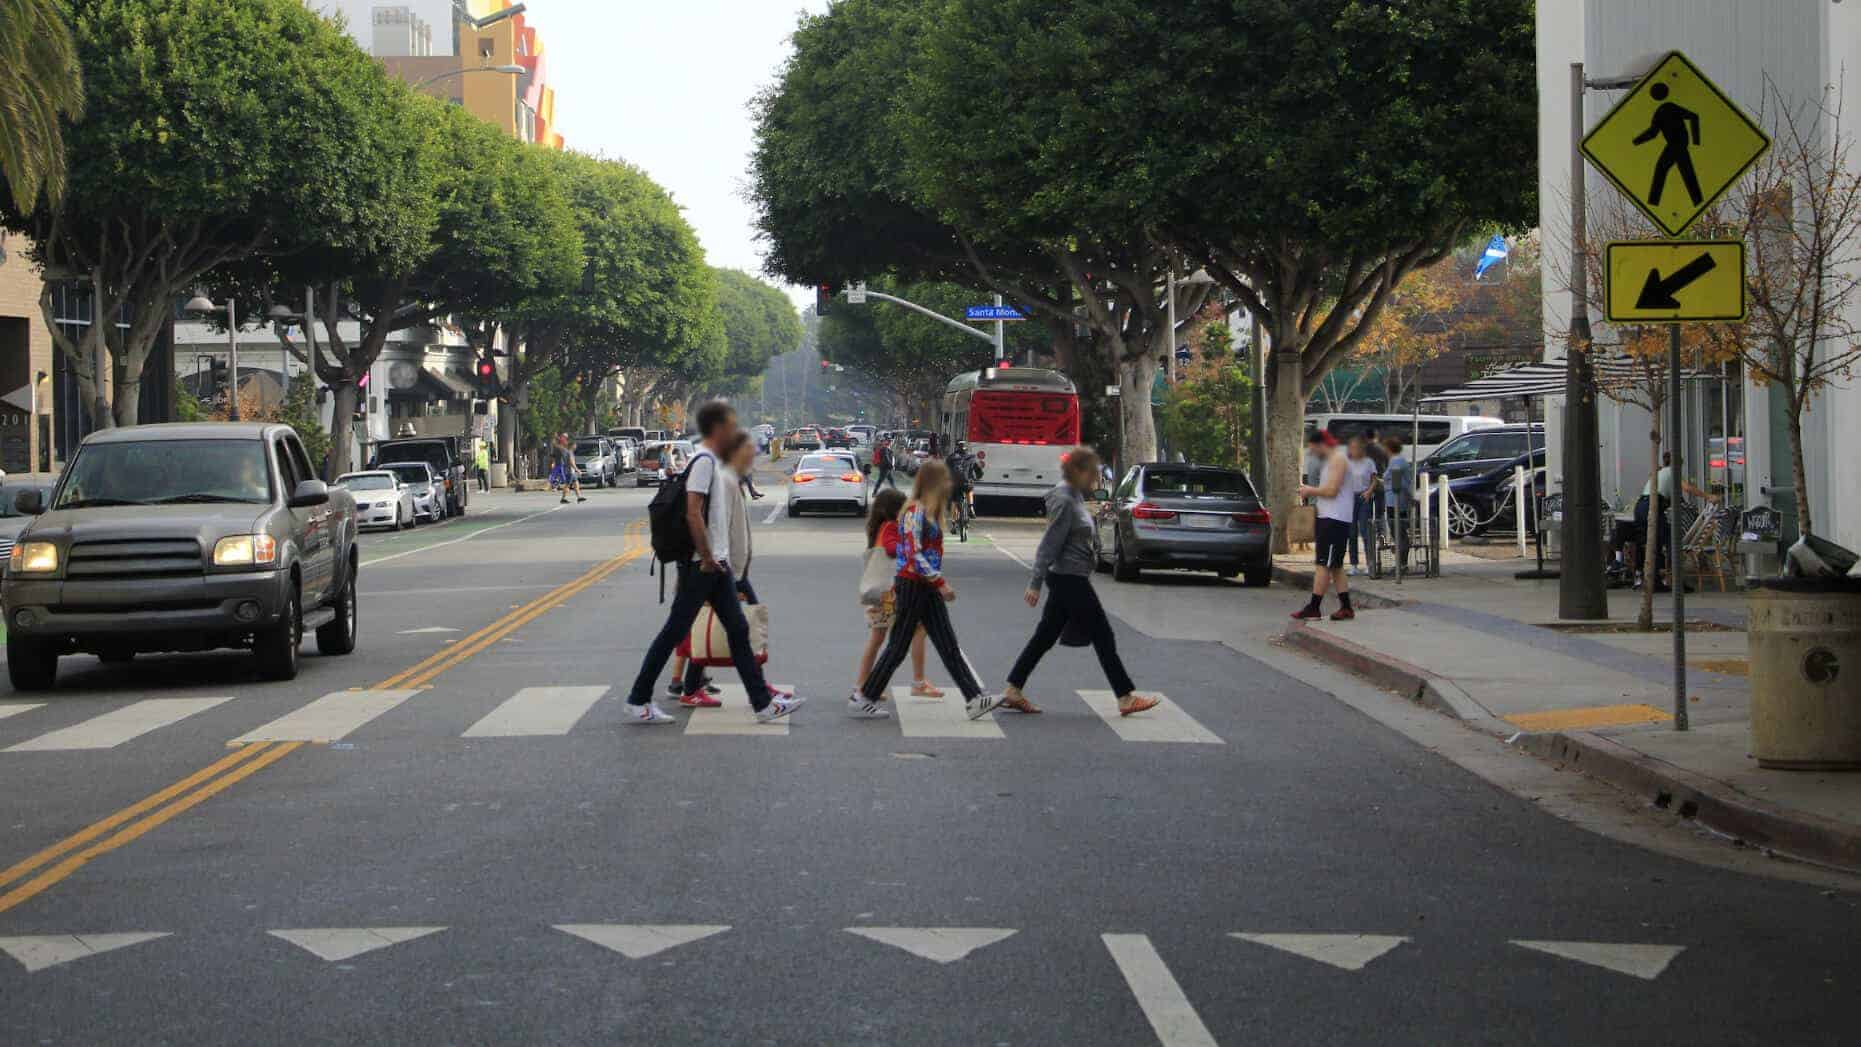 A group of young people at a marked crosswalk